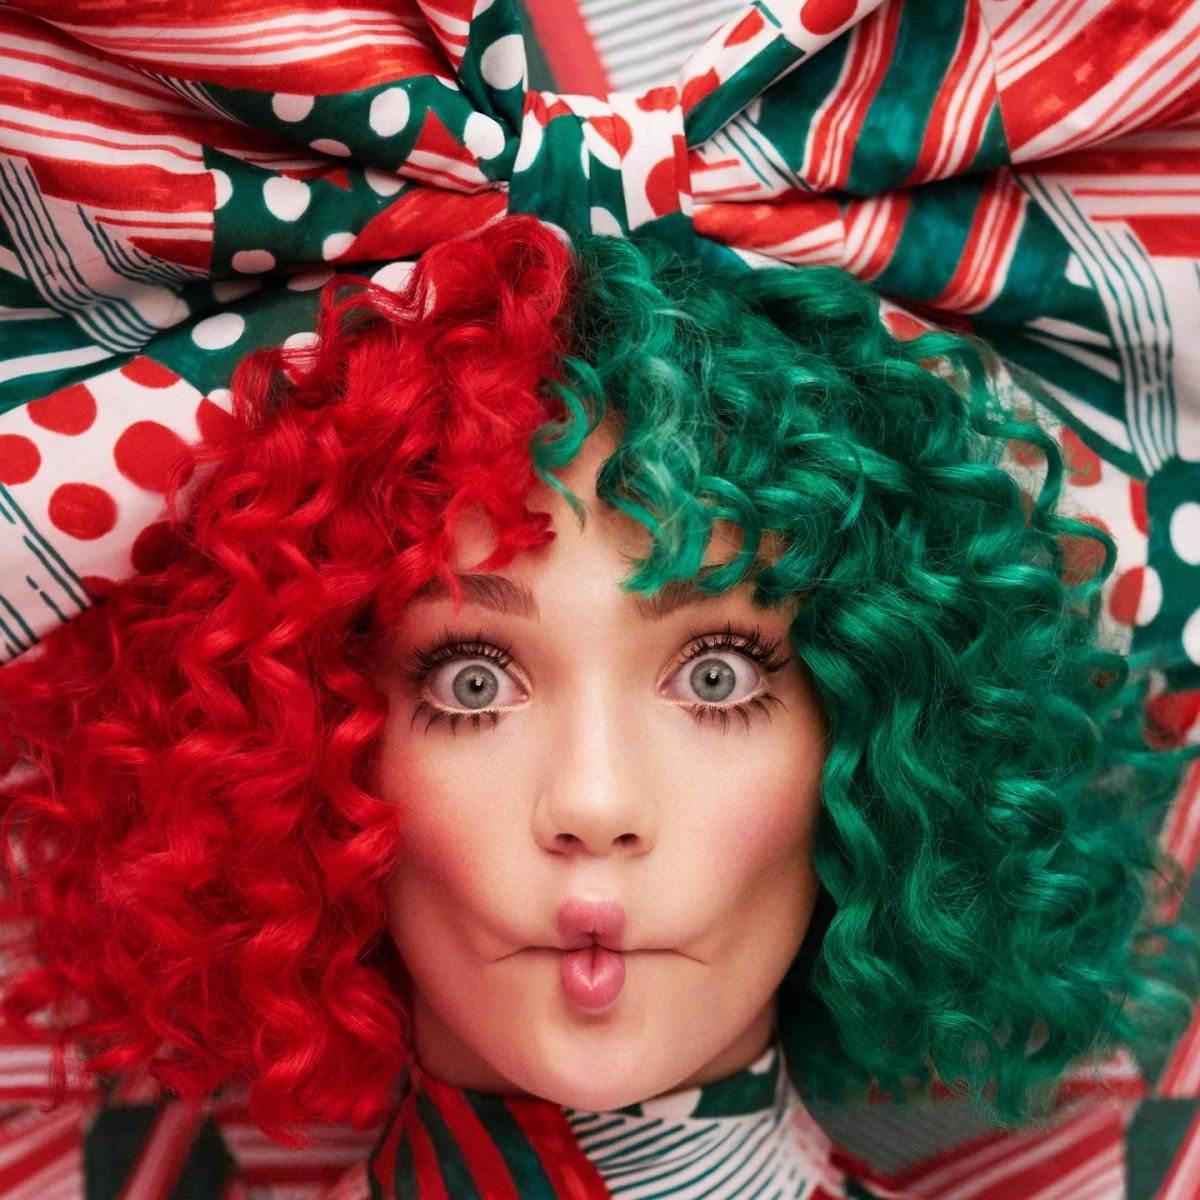 The quality of Sia's Christmas album would leave Stephens shaken